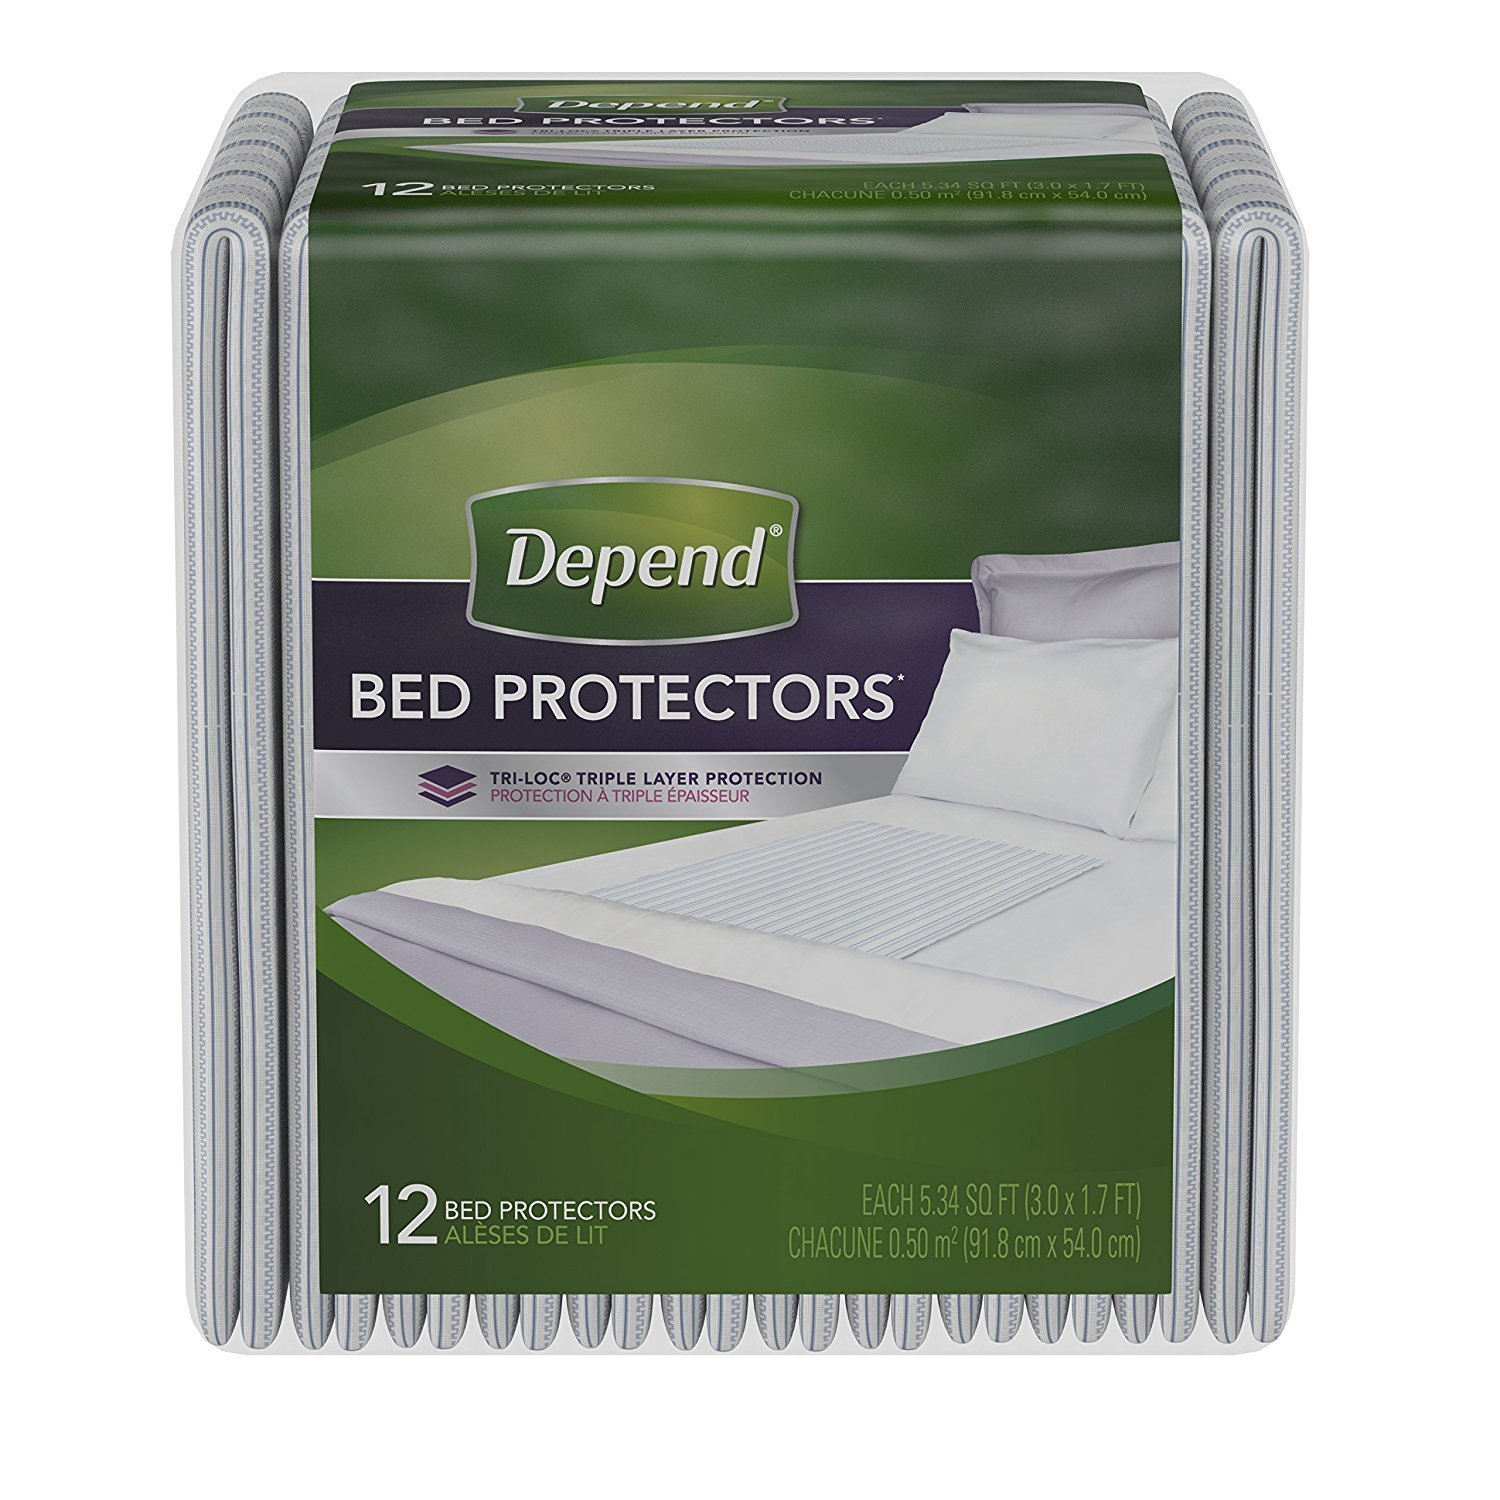 PACK OF 3 - Depend Incontinence Bed Protectors, Disposable Underpad, Overnight Absorbency, 12 Count